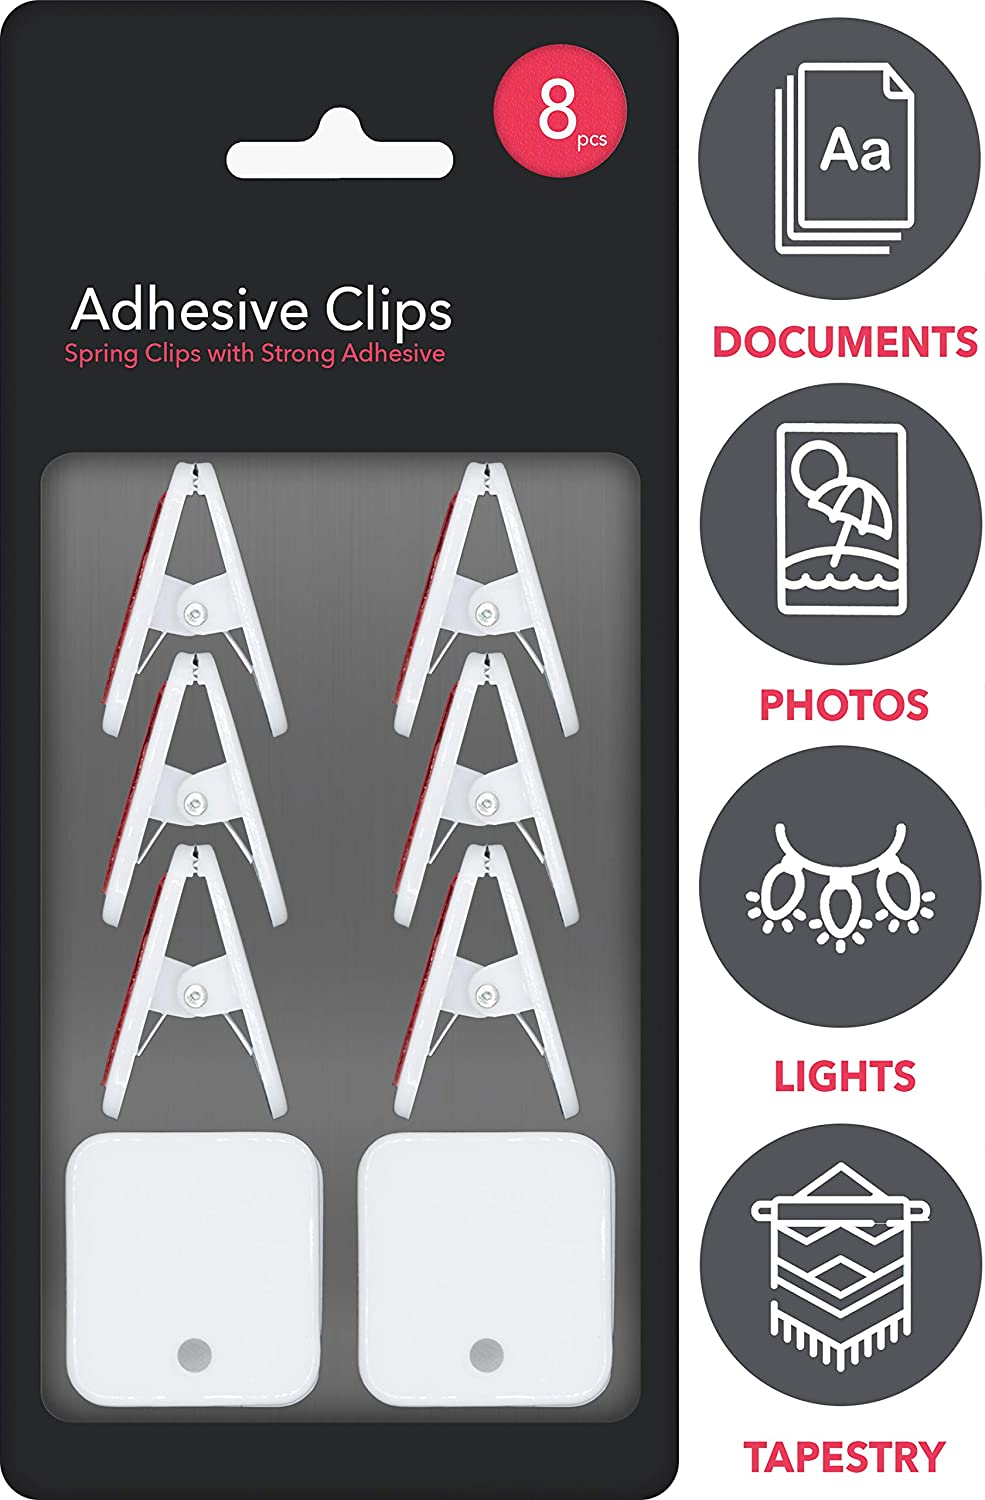 Self Adhesive Clips for Tapestry Hanger, Wall Clips, Flag Hanger for Wall, Photo Clips, Sticky Clips for Teachers, Spring Clips for Rope Light Clips, Poster (8 Pack, White)